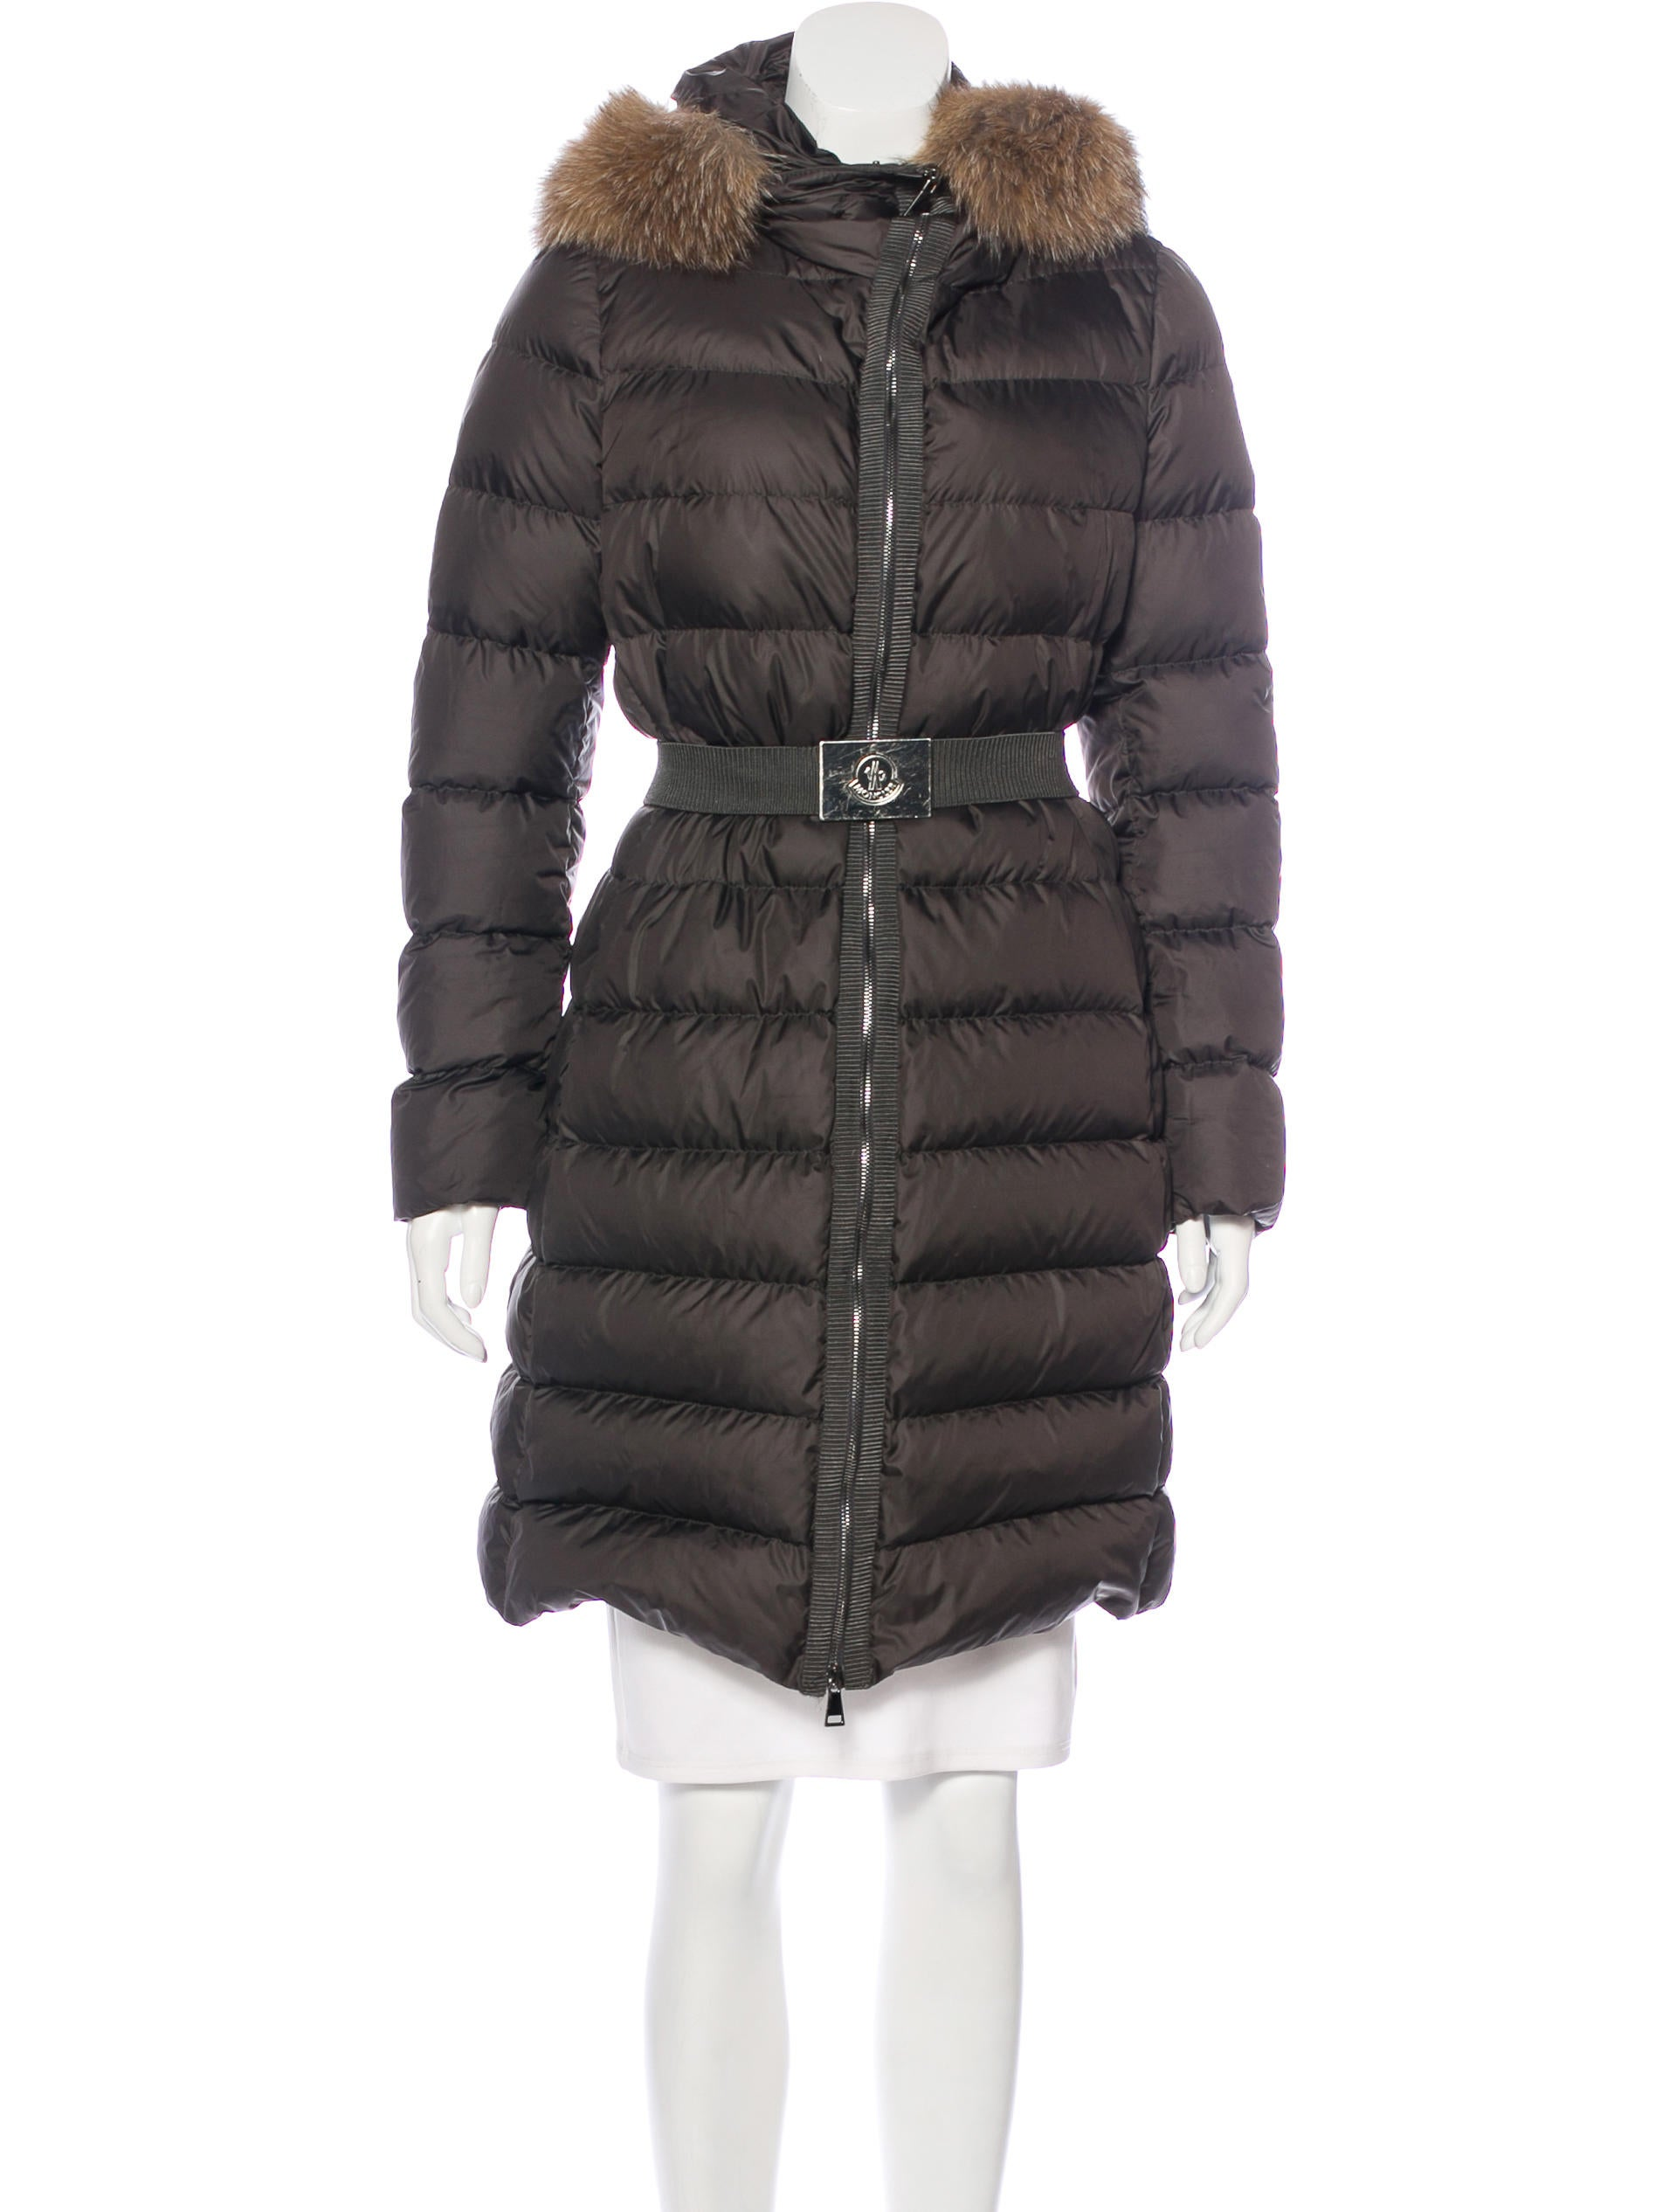 Moncler Fabrefox Fur Trimmed Coat Clothing MOC26923